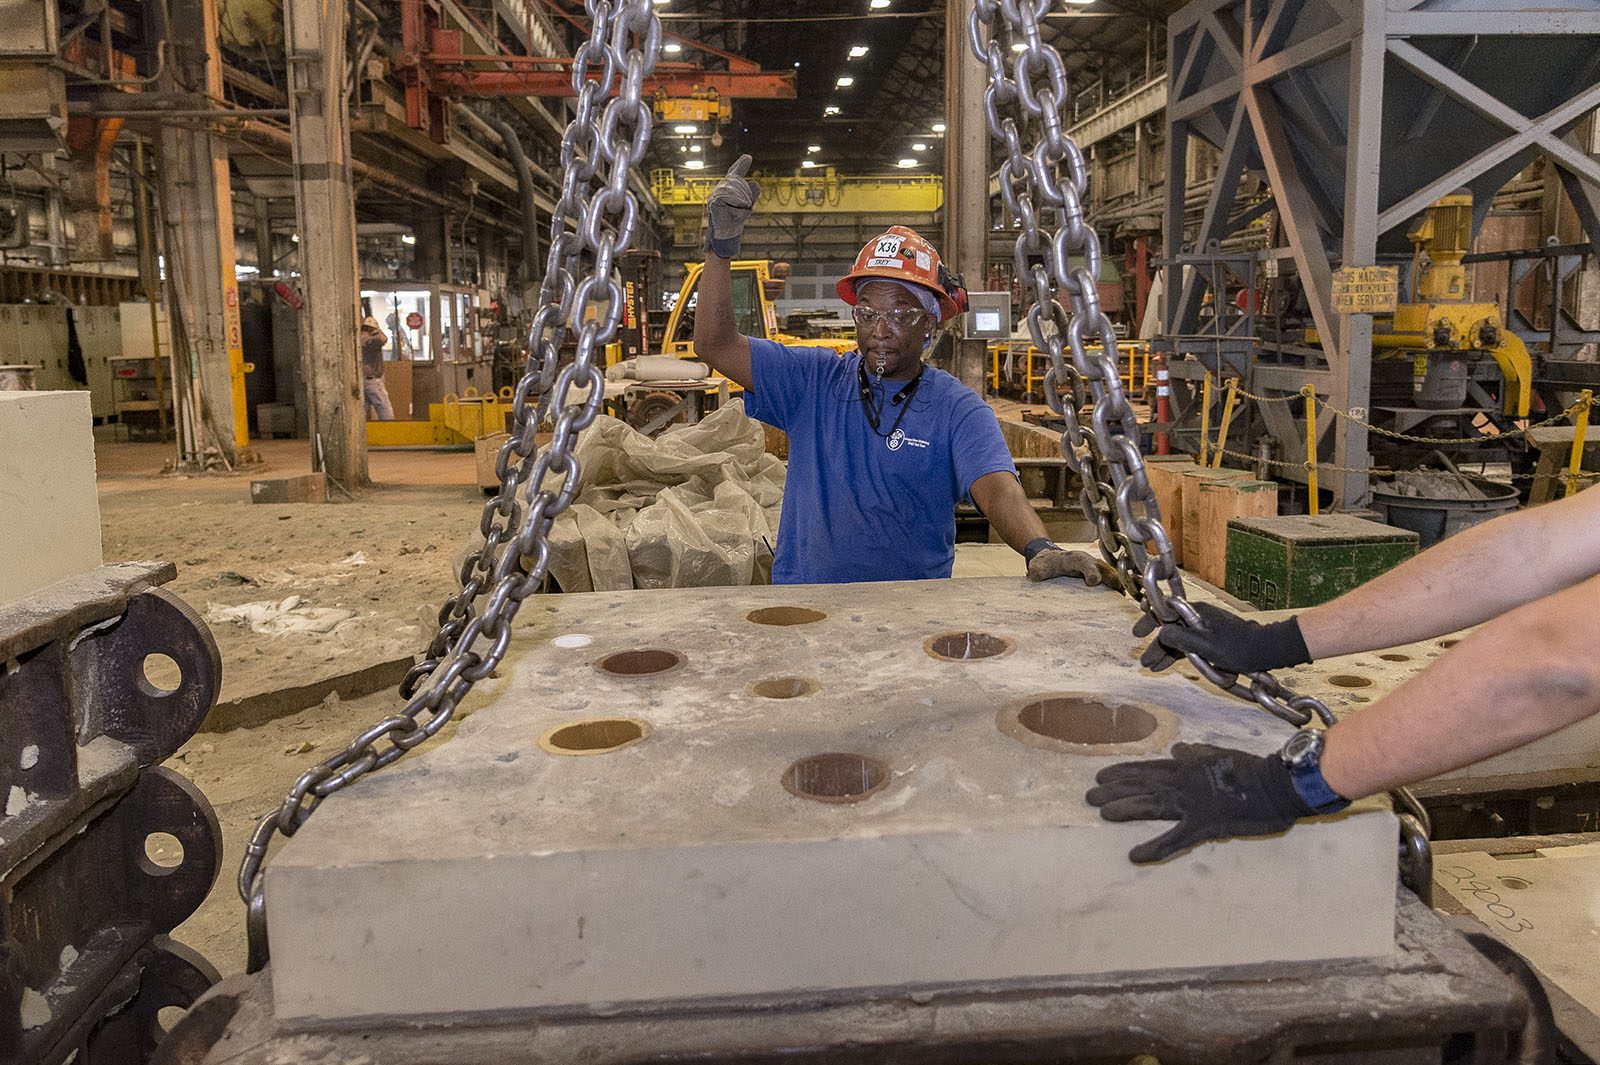 In the Foundry, Shipbuilder Tremayne Dugger signals the crane operator to lift a mold ready for casting.